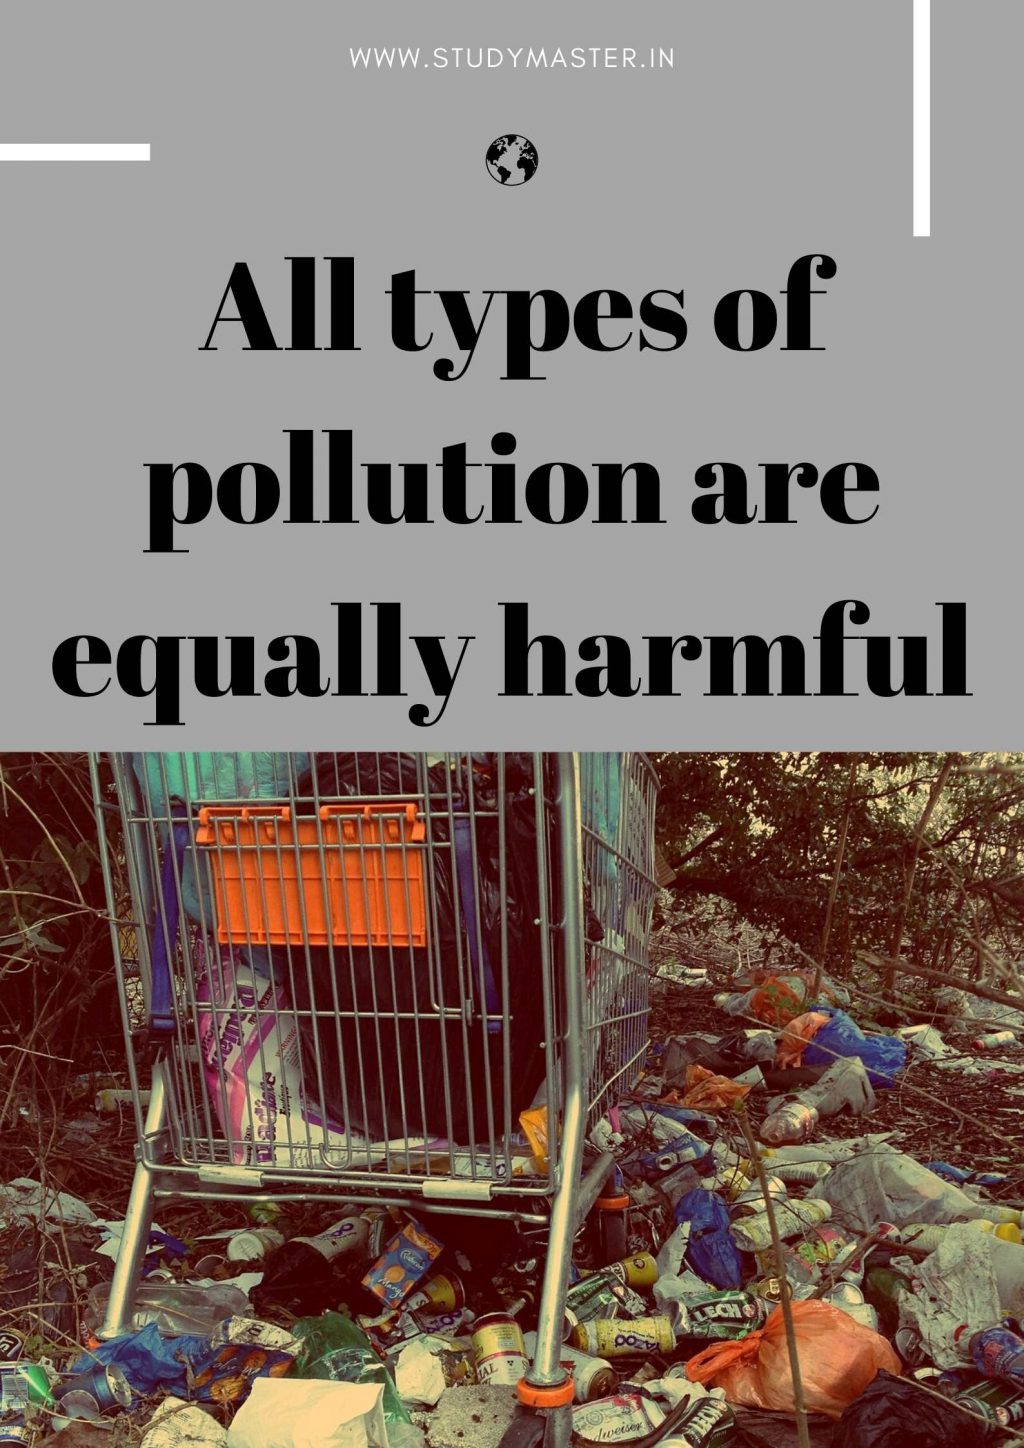 poster on environment pollution